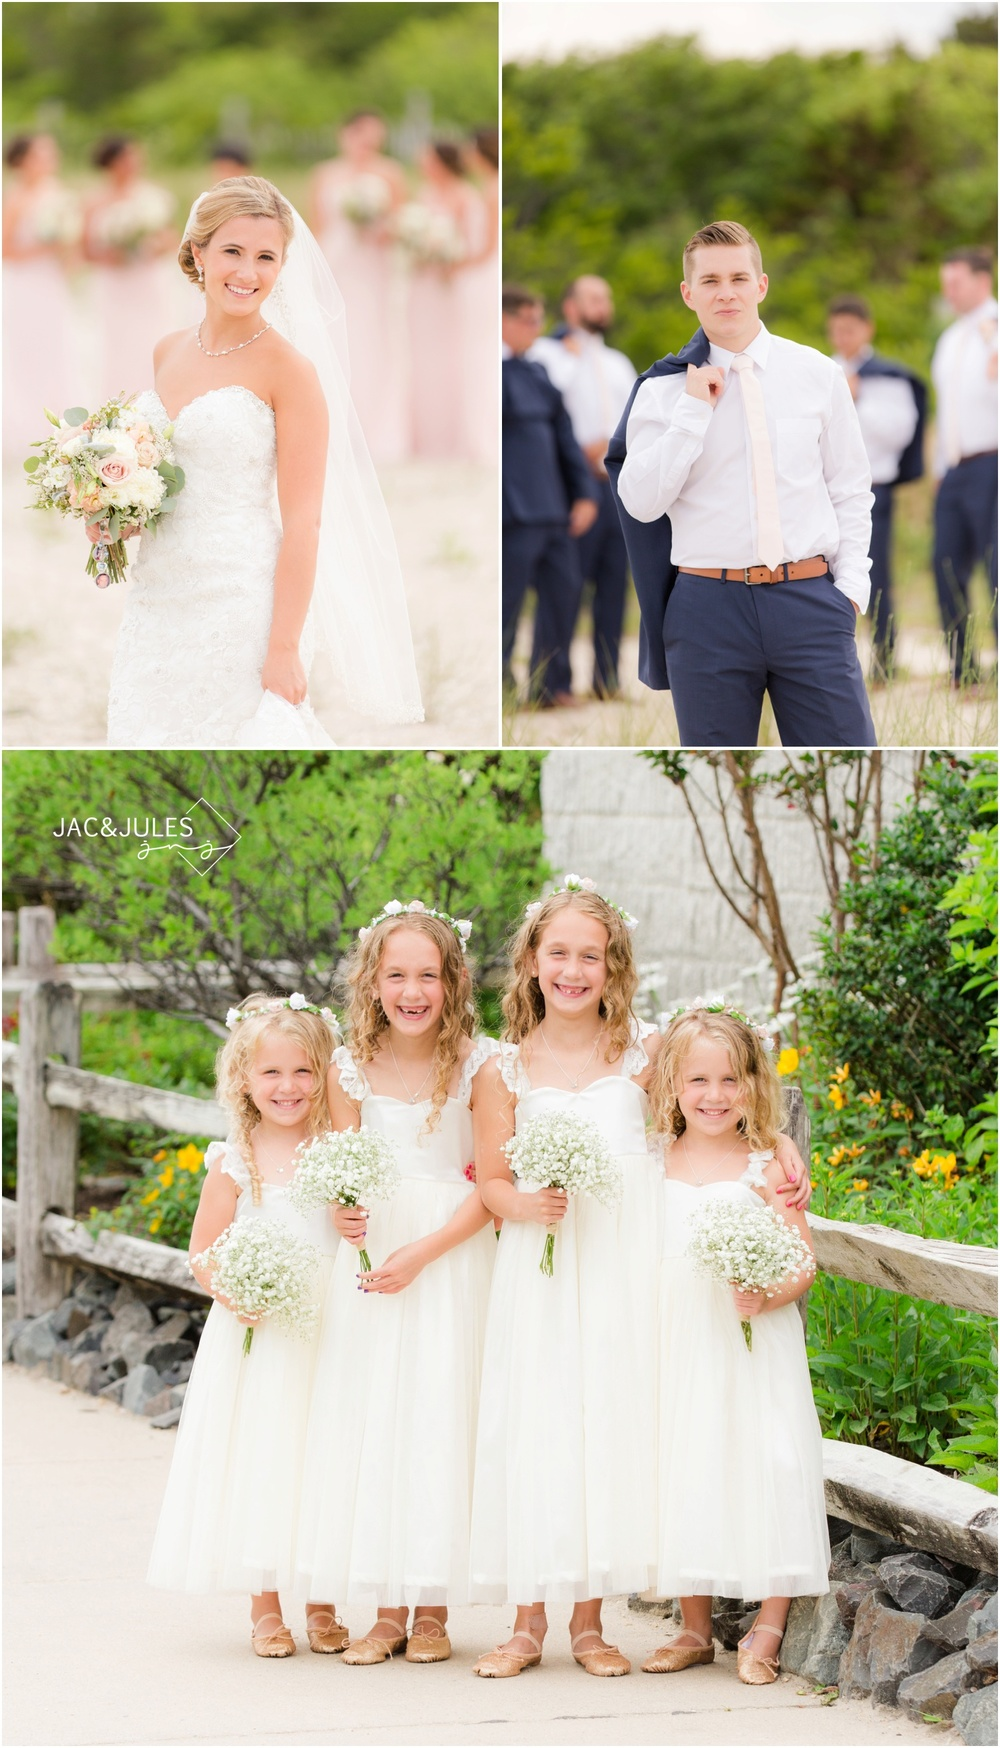 wedding day photos of Bride, Groom and 2 sets of identical twin flower girls on the beach in LBI, NJ by Old Barney.